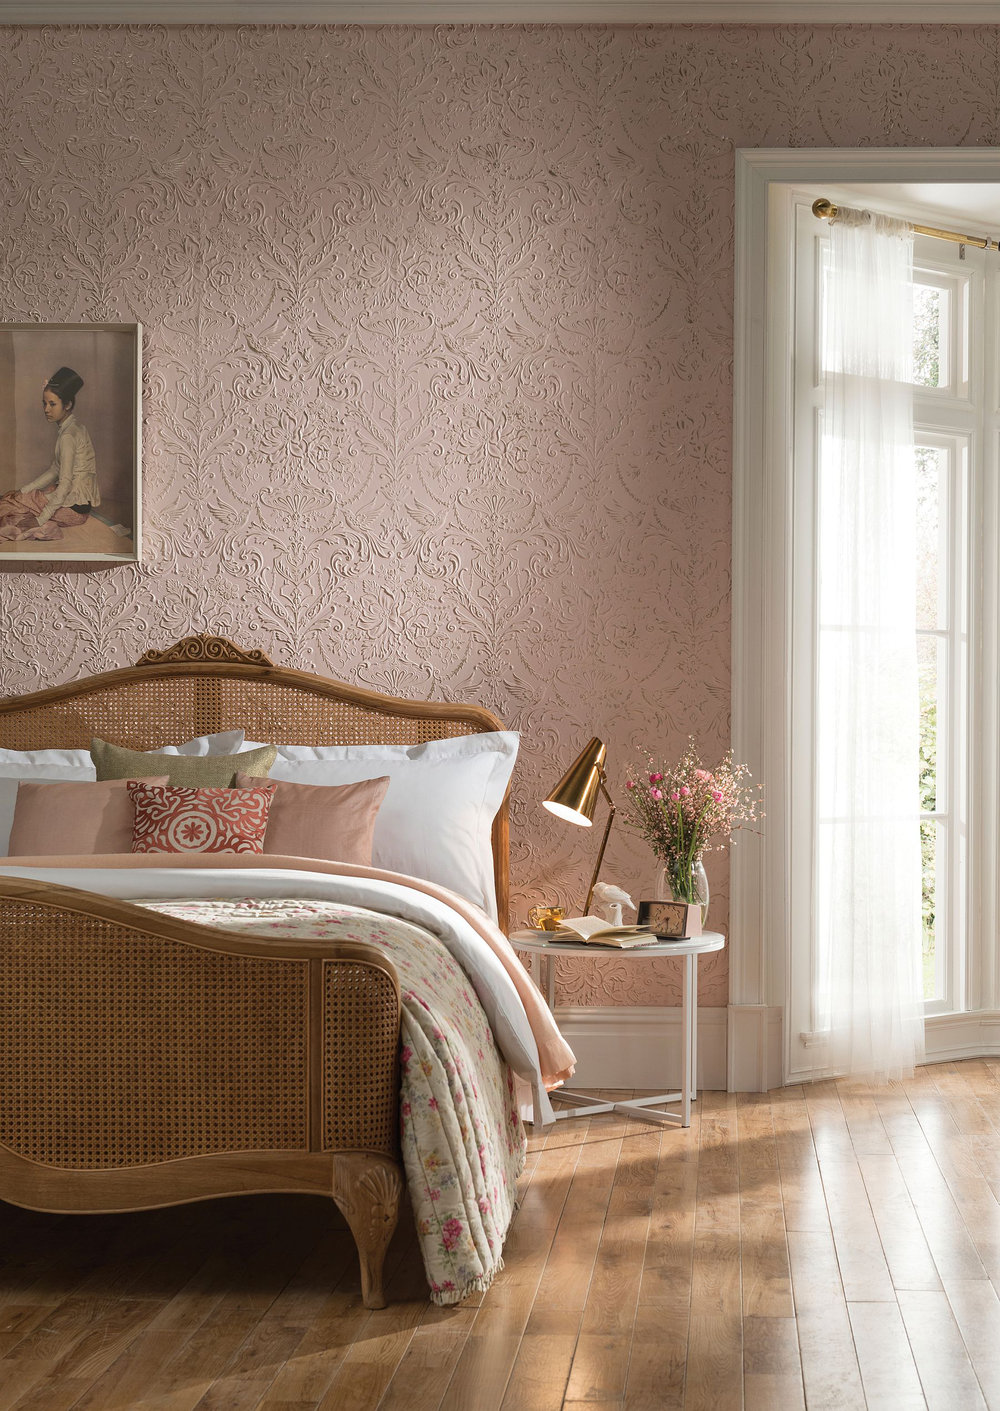 Wallpapers For A Bedroom Passeri By Lincrusta Paintable Rd1971fr